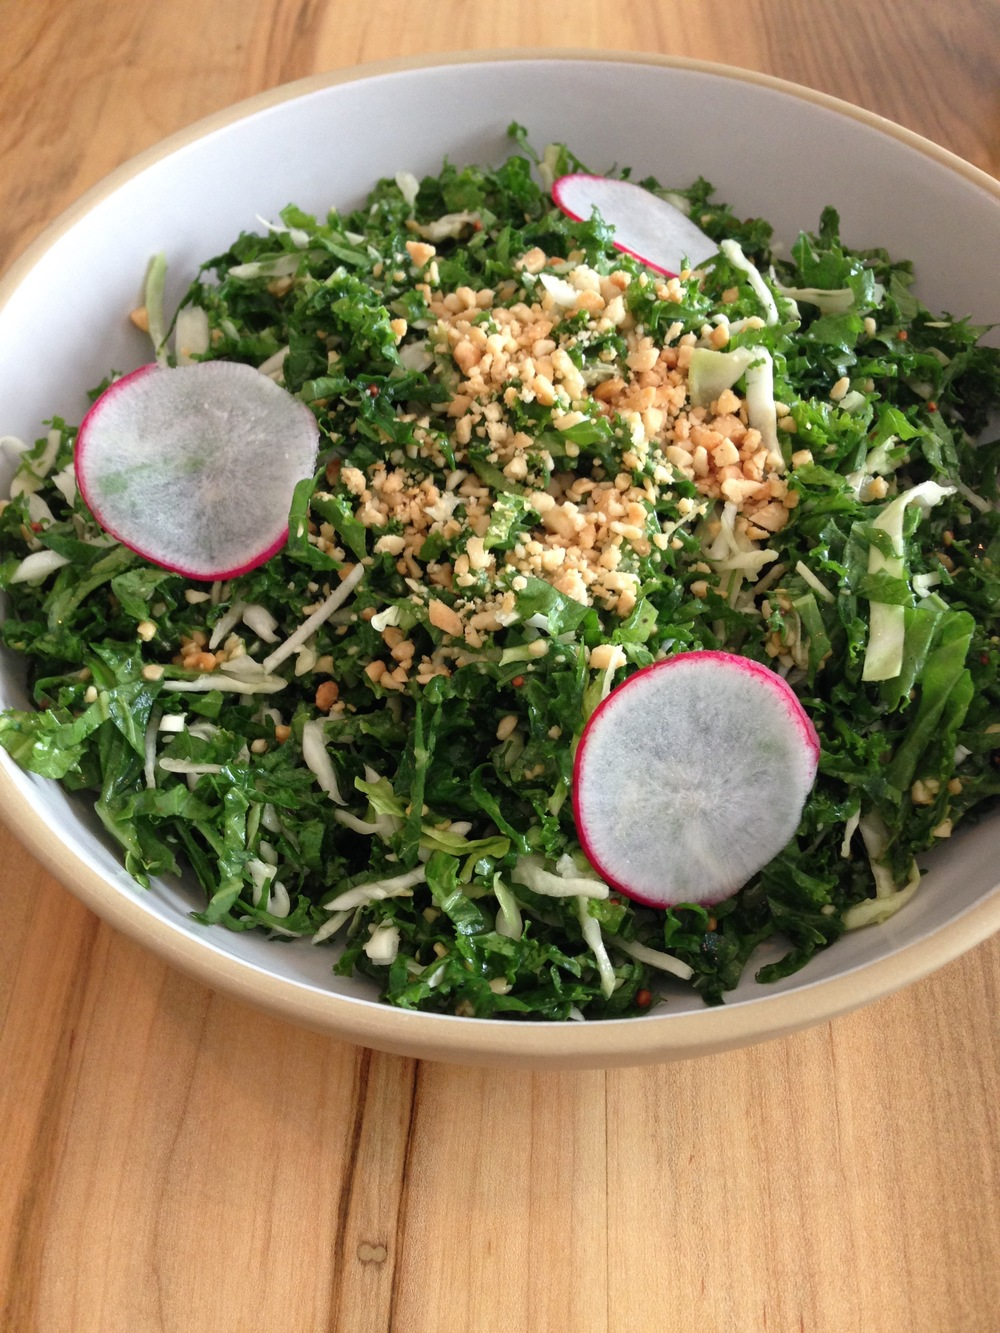 Nom nom nom kale salad...no meat, only deliciousness